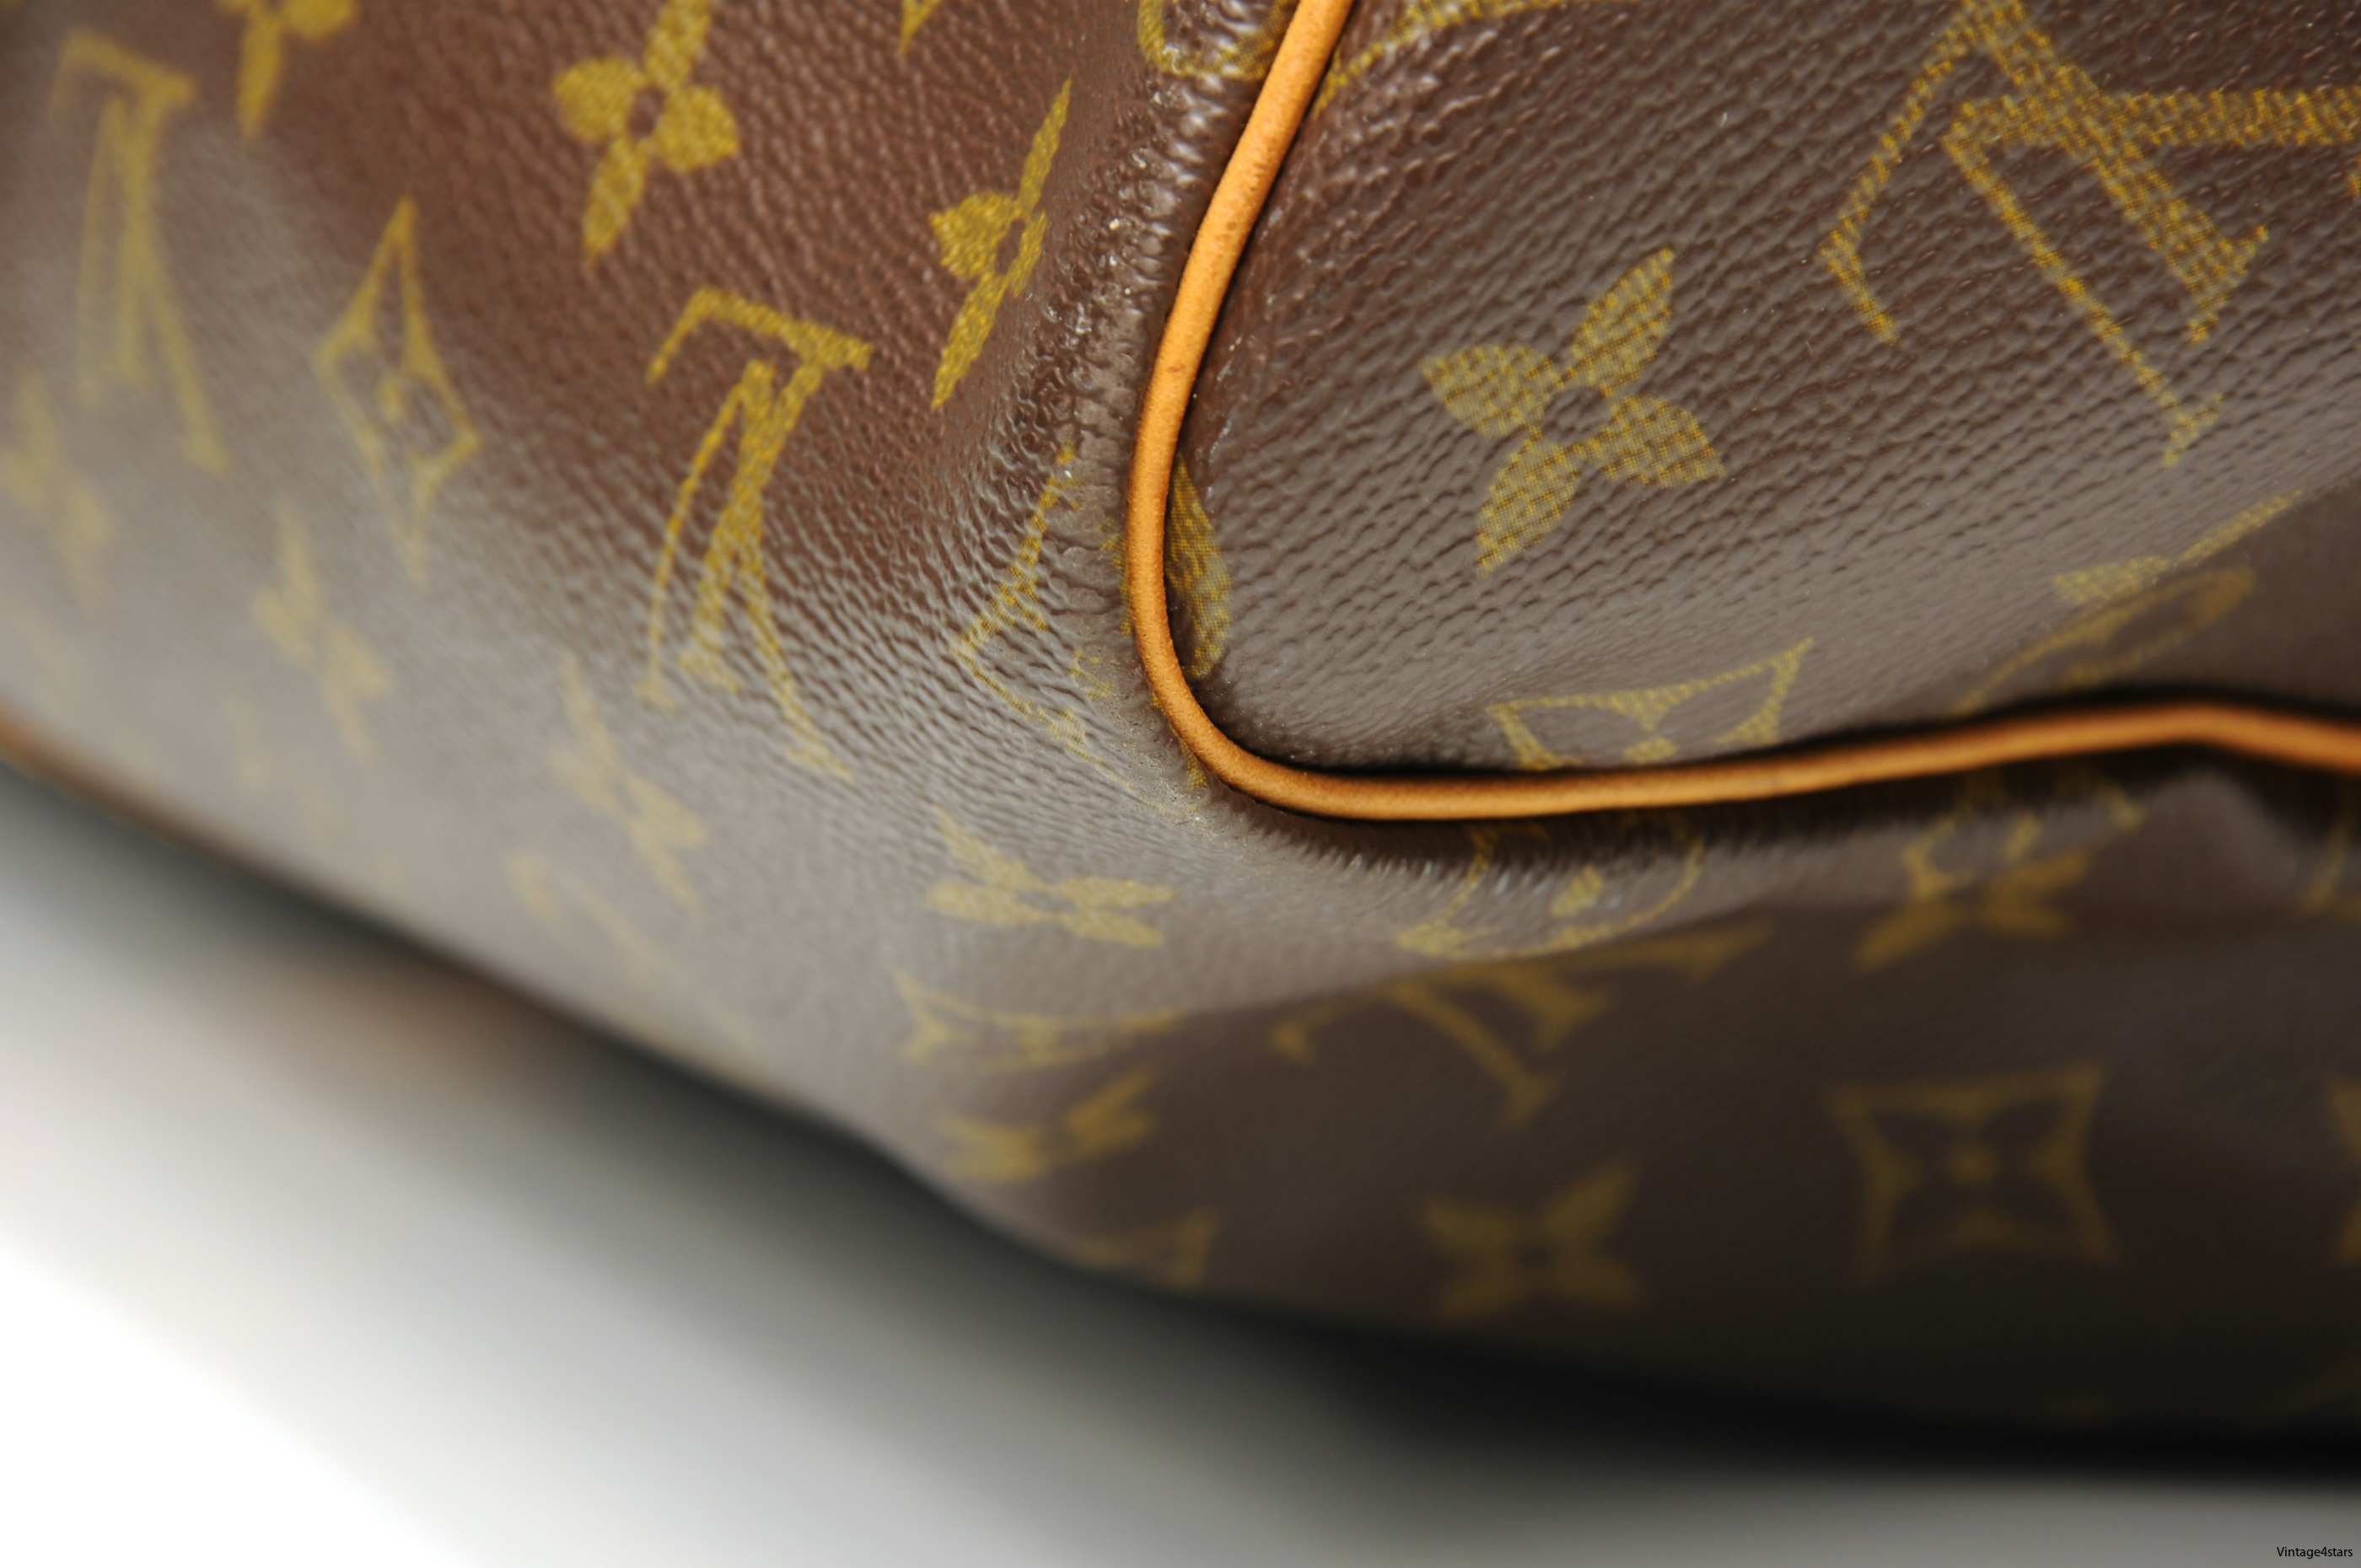 Louis Vuitton Keepall 55 Monogram 8